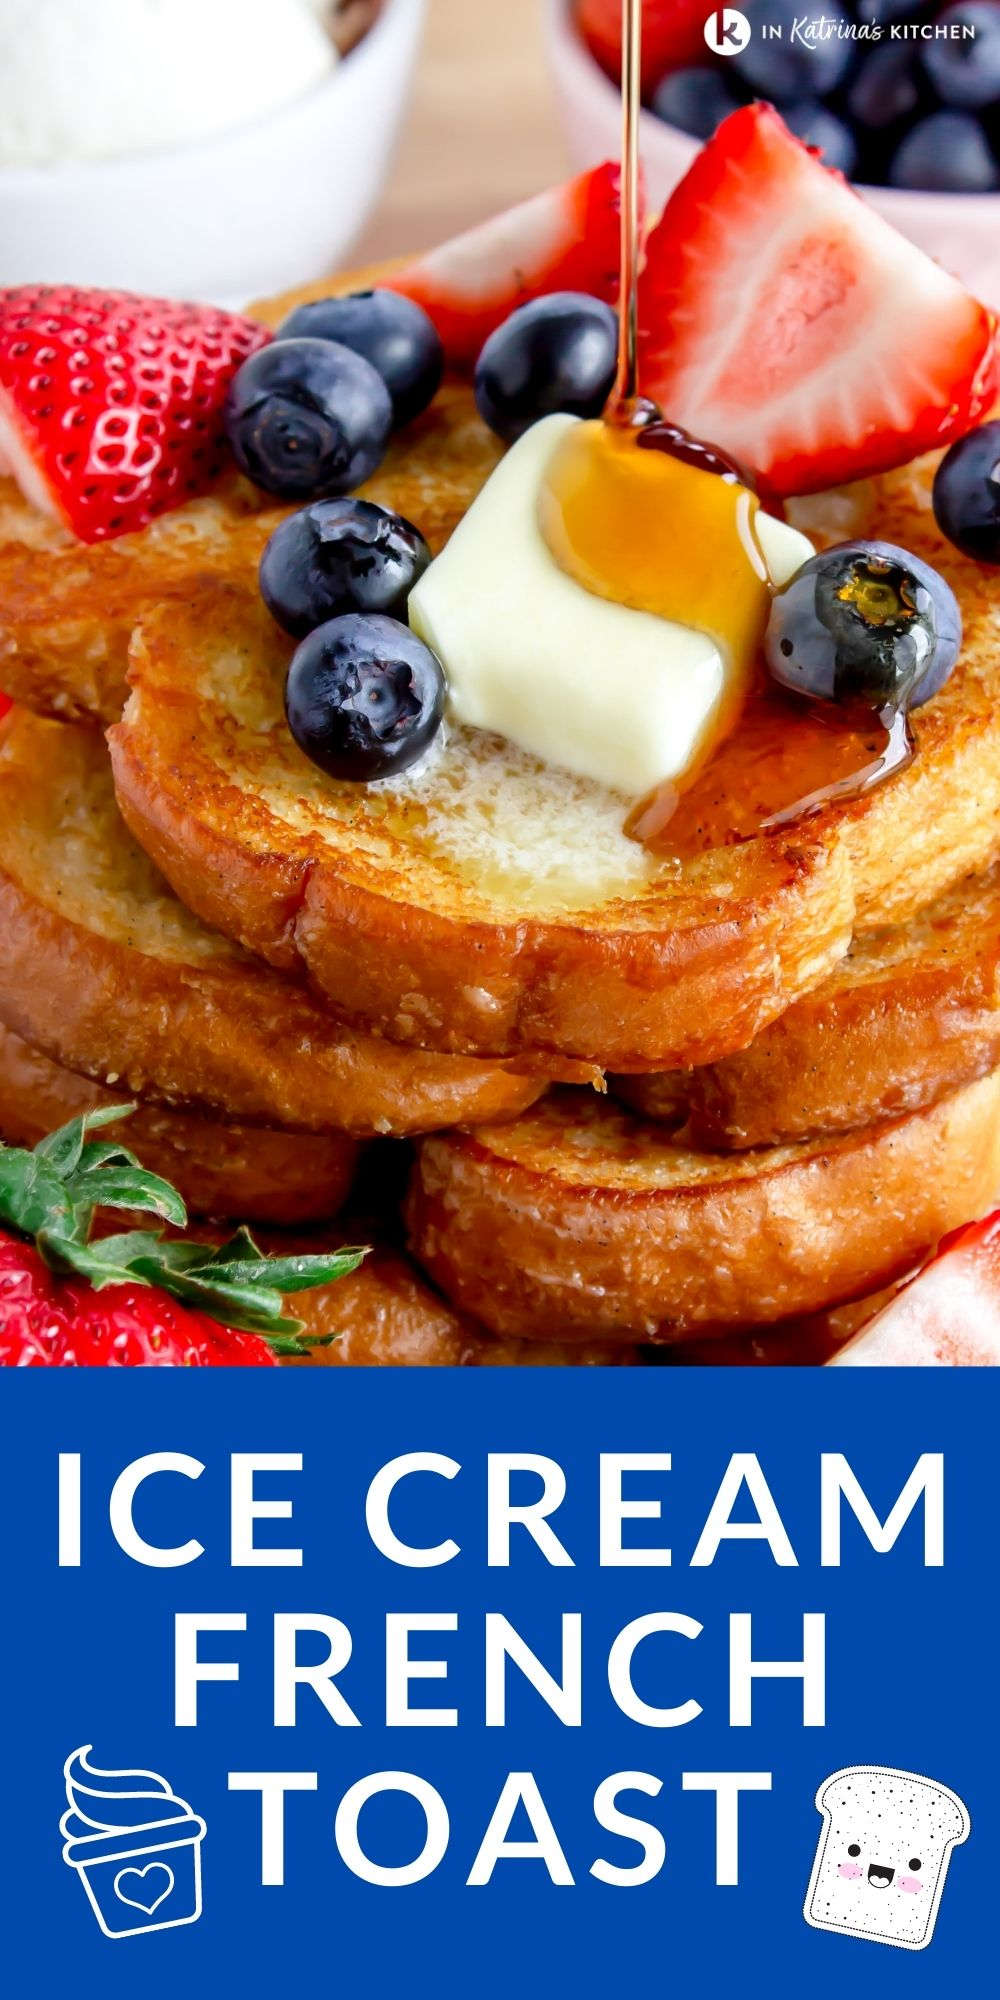 This Ice Cream French Toast uses melted ice cream as a custard base for the most tender and delicious French toast you'll ever taste. PRINT and PIN the recipe at In Katrina's Kitchen.